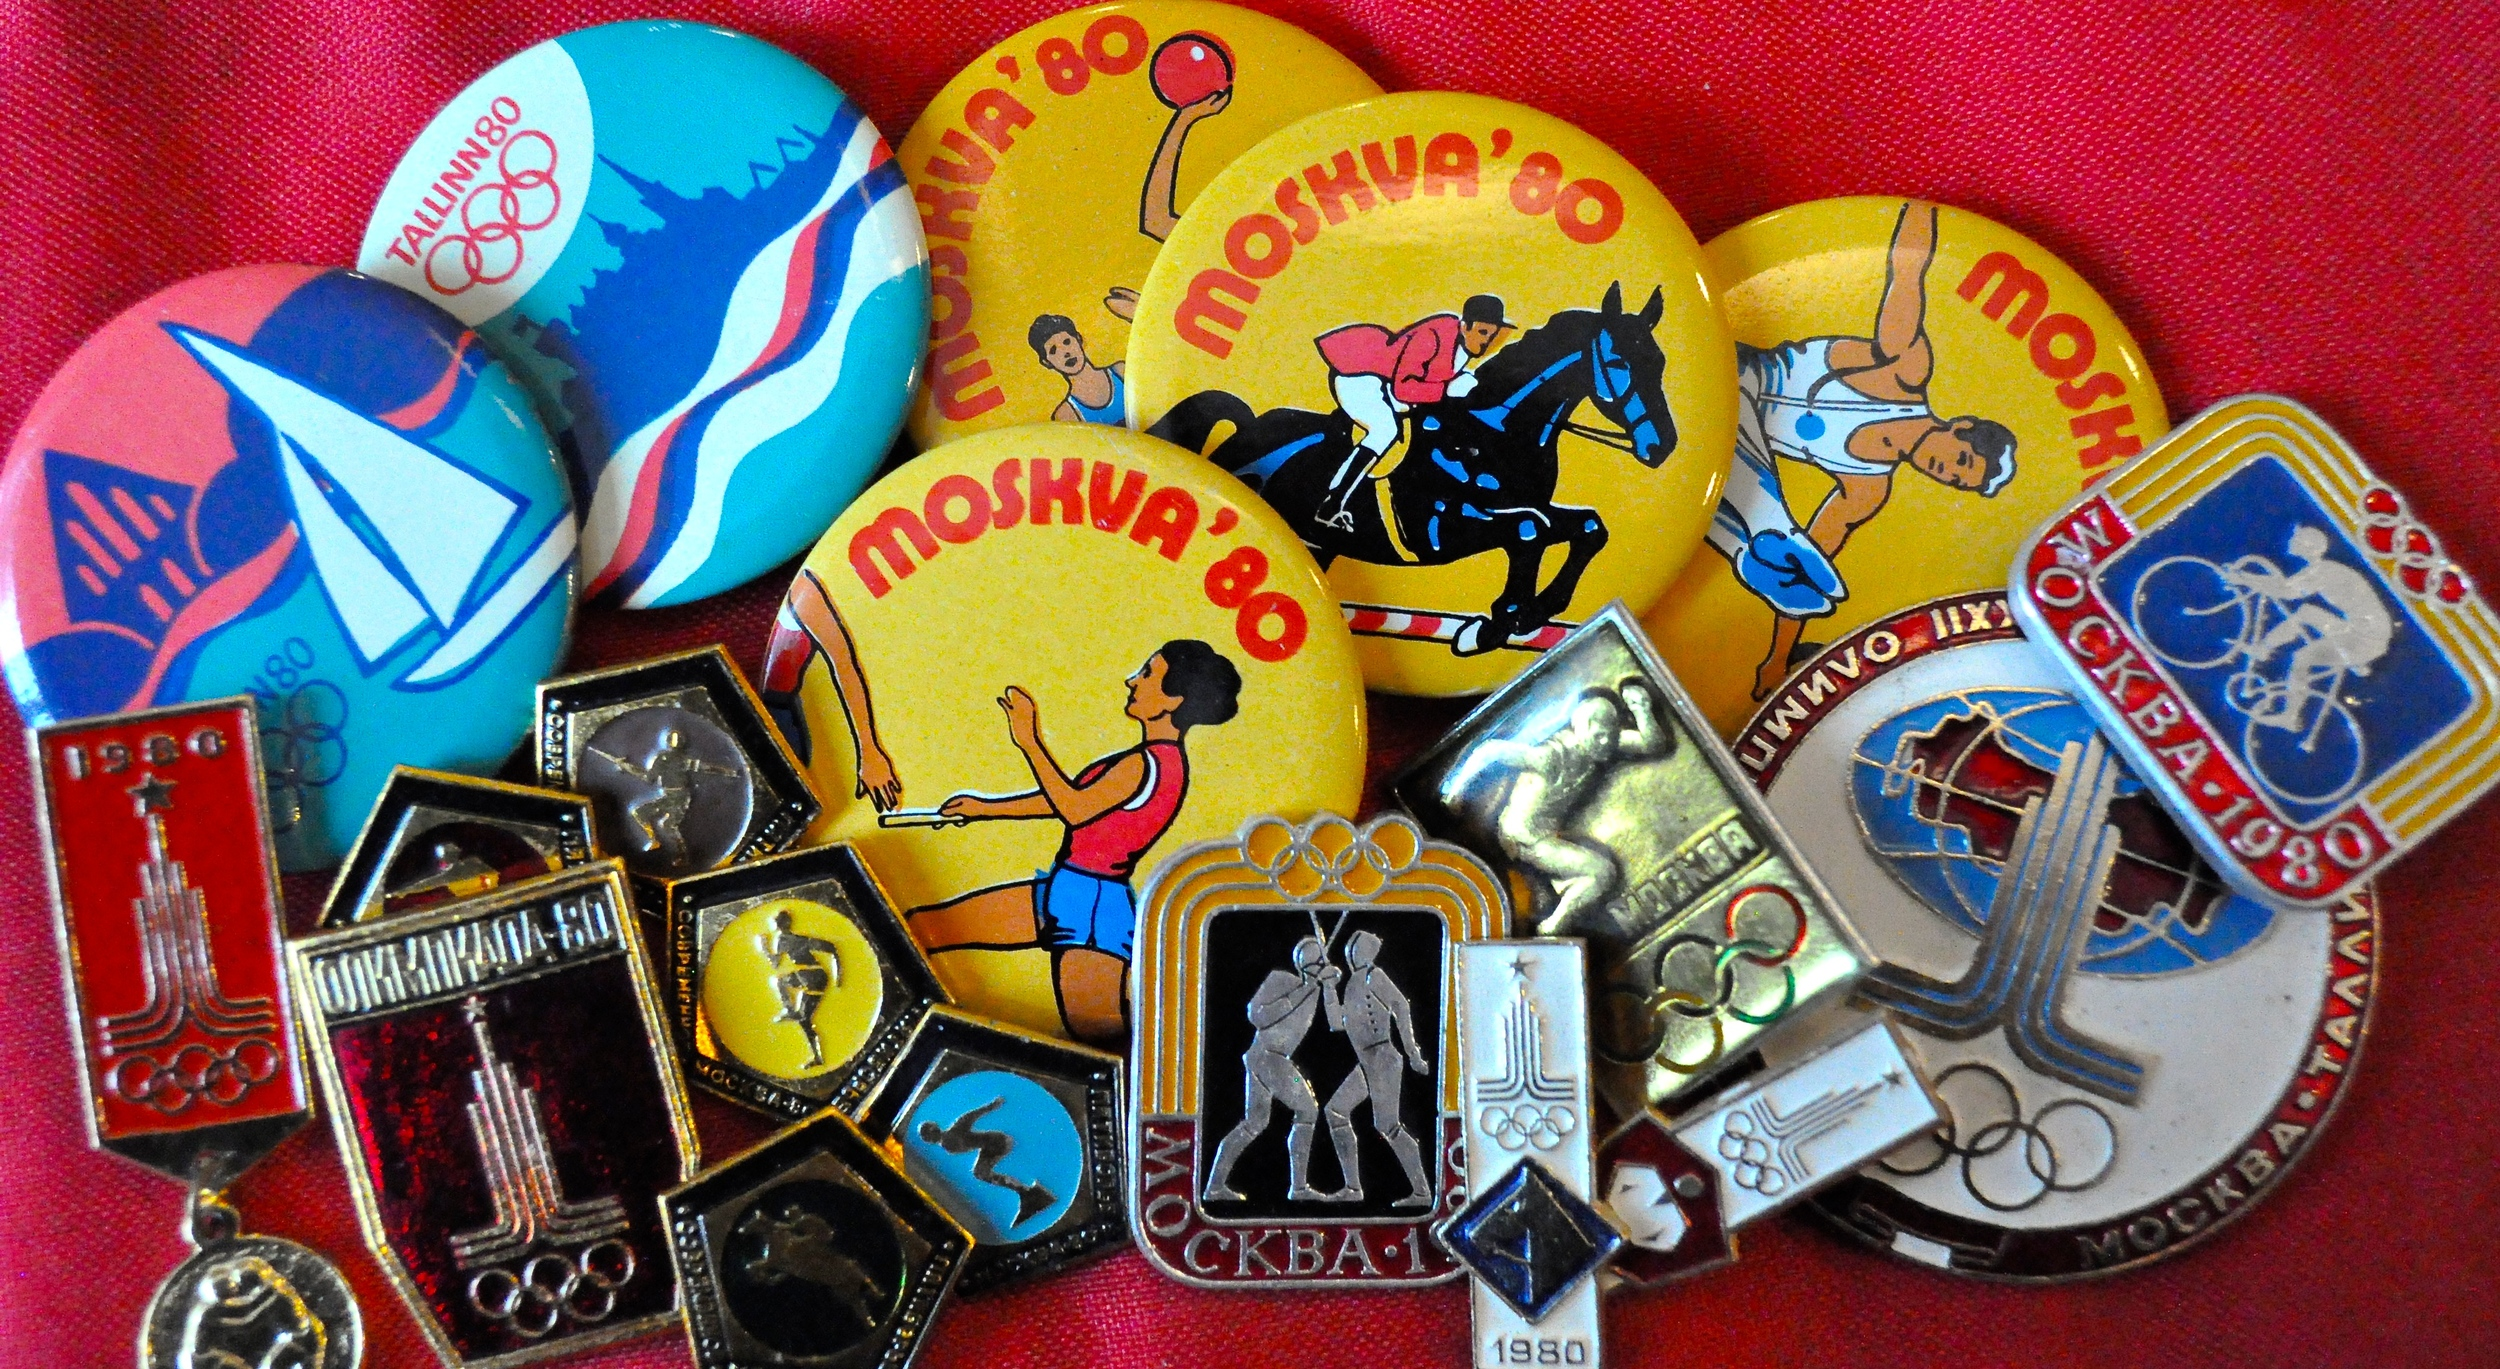 A selection of Moscow Olympic pins brought home from our 1977 trip.